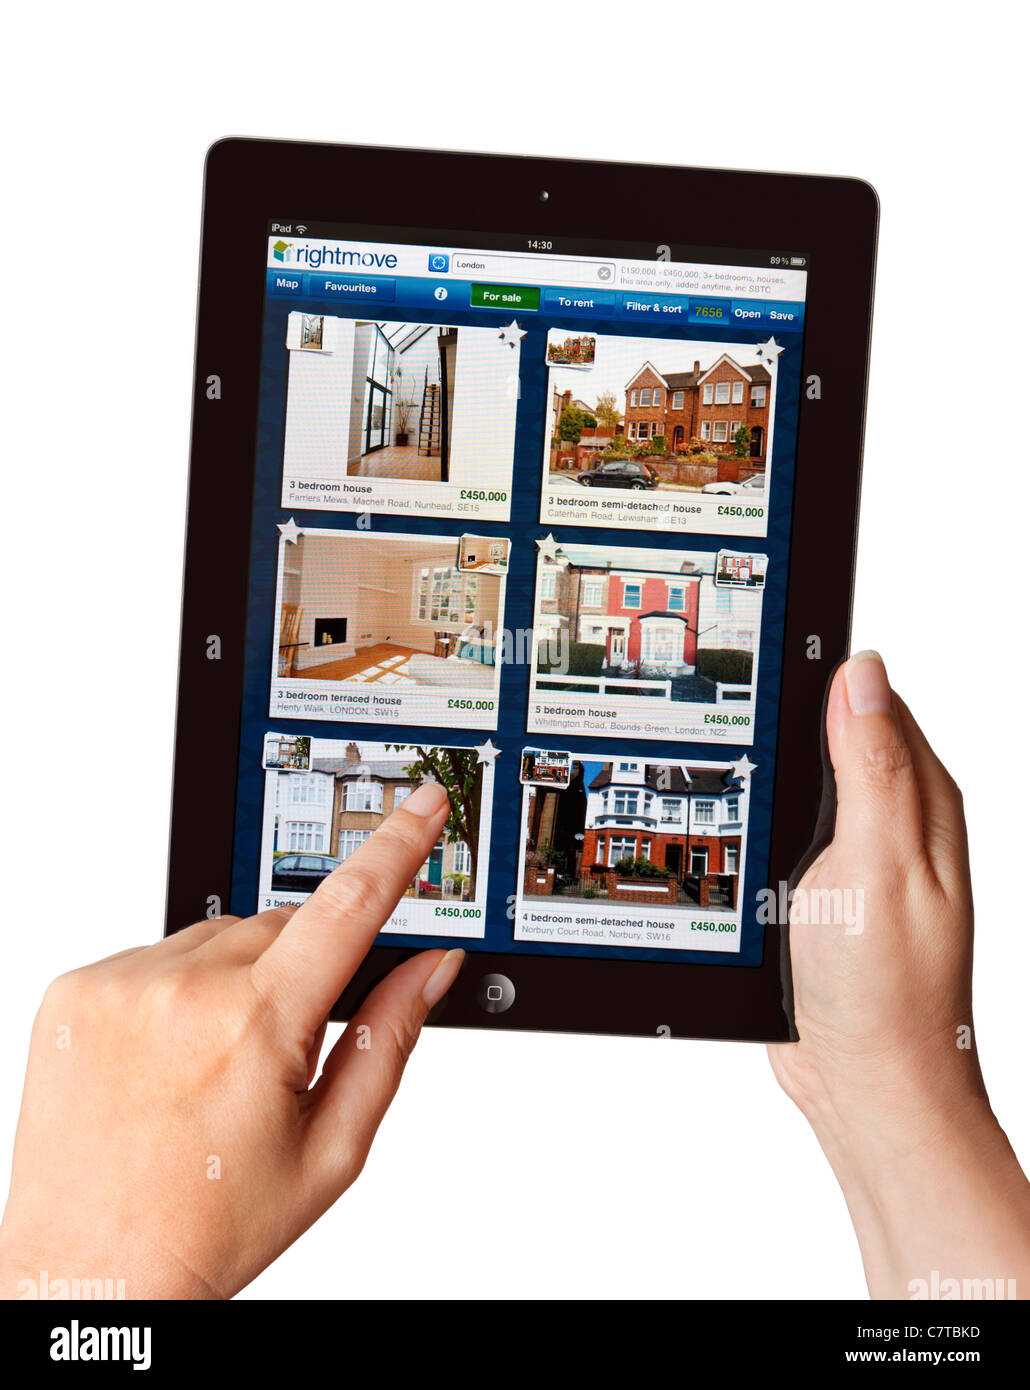 Hands holding iPad searching for a house for sale on the Rightmove app on a tablet - Stock Image